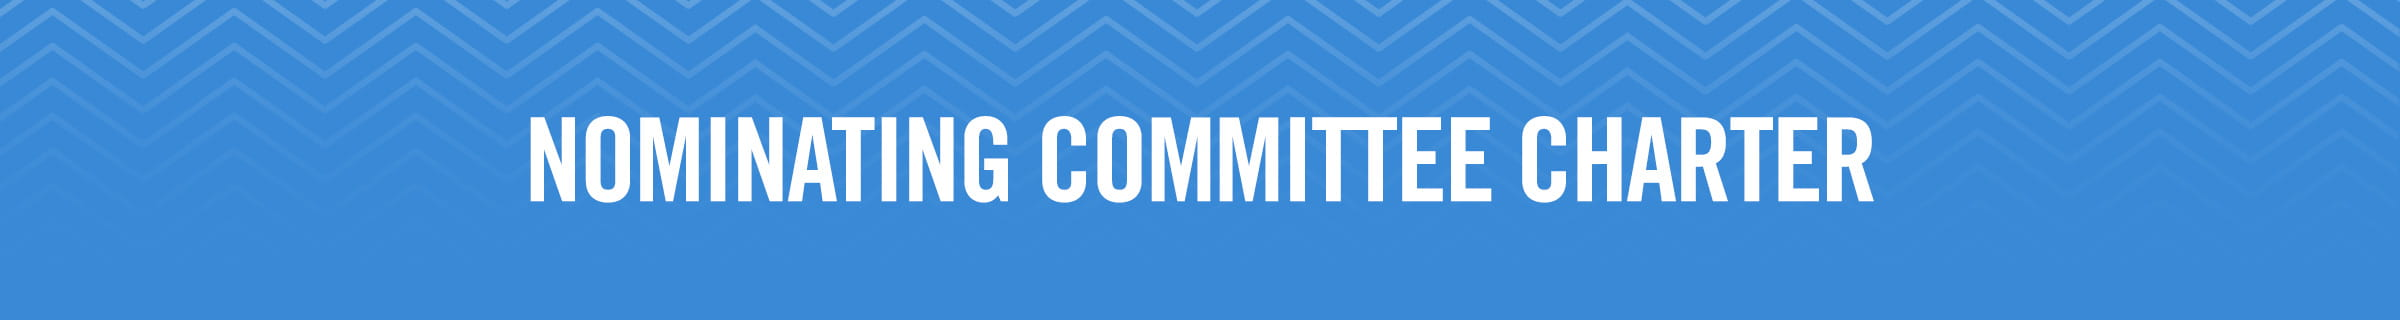 Nominating Committee Charter